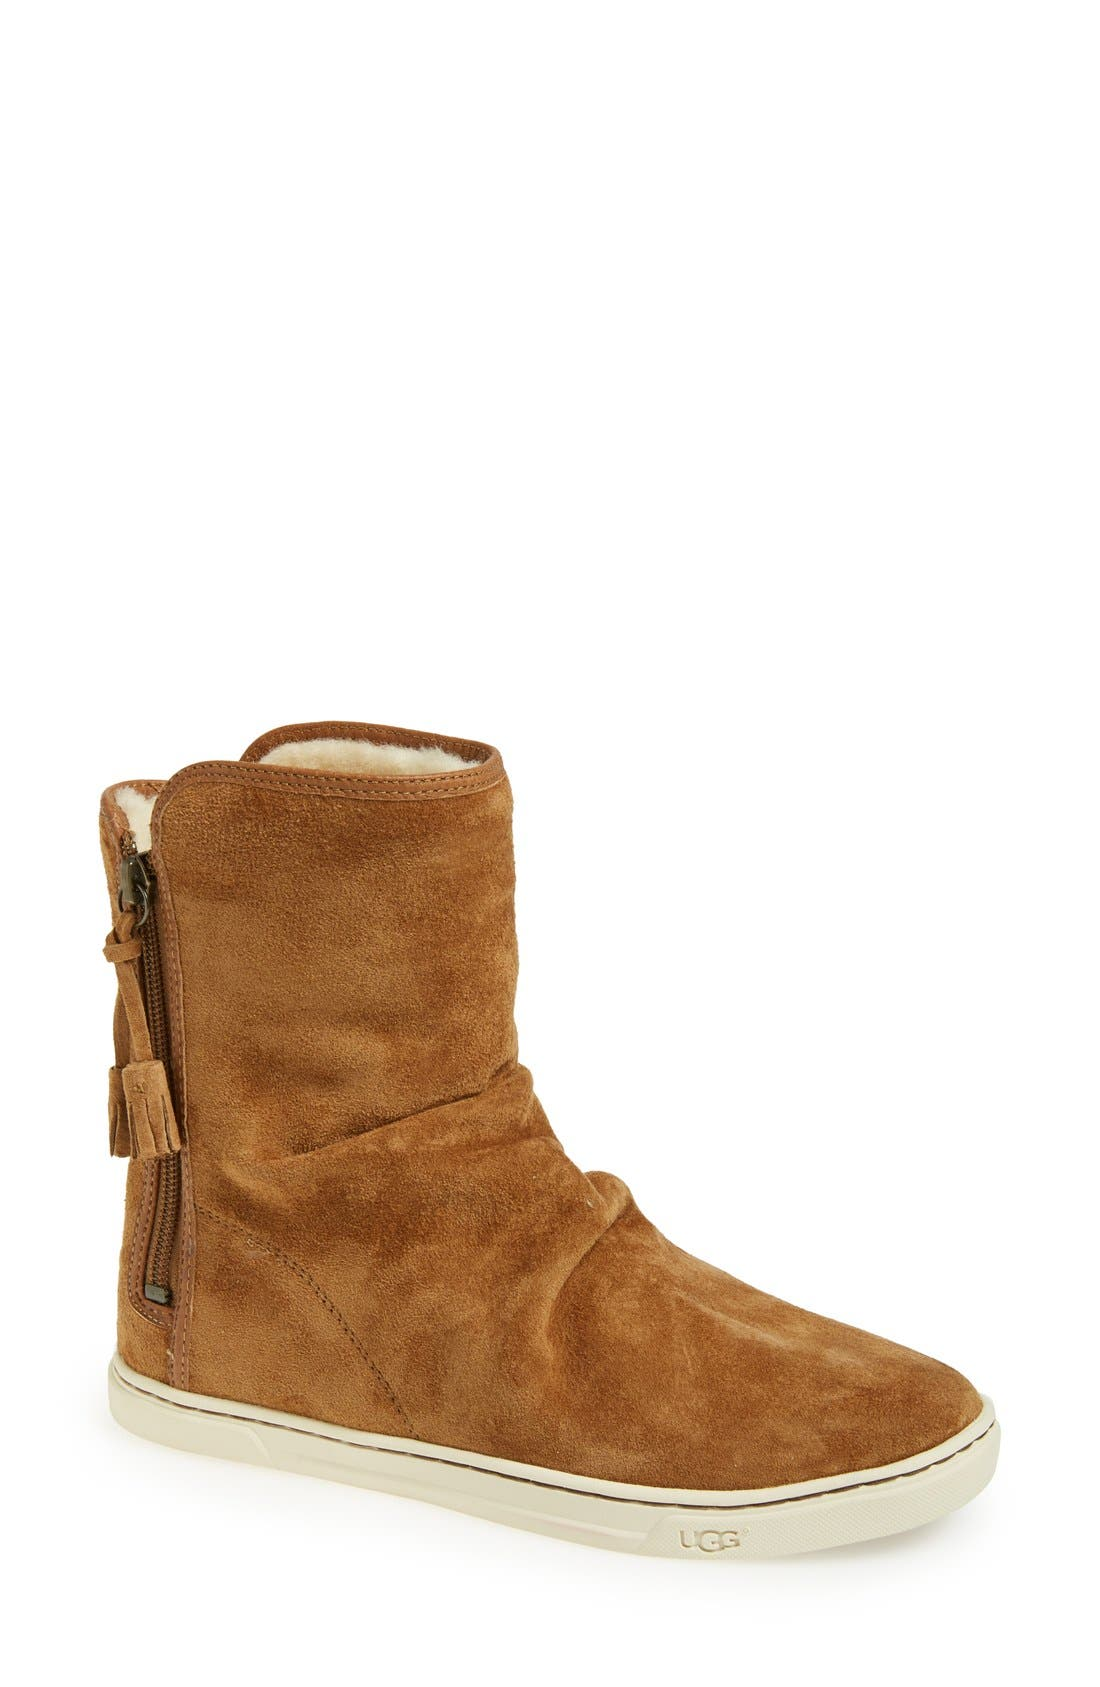 Australia 'Becky' Water Resistant Suede Boot,                         Main,                         color, Chestnut